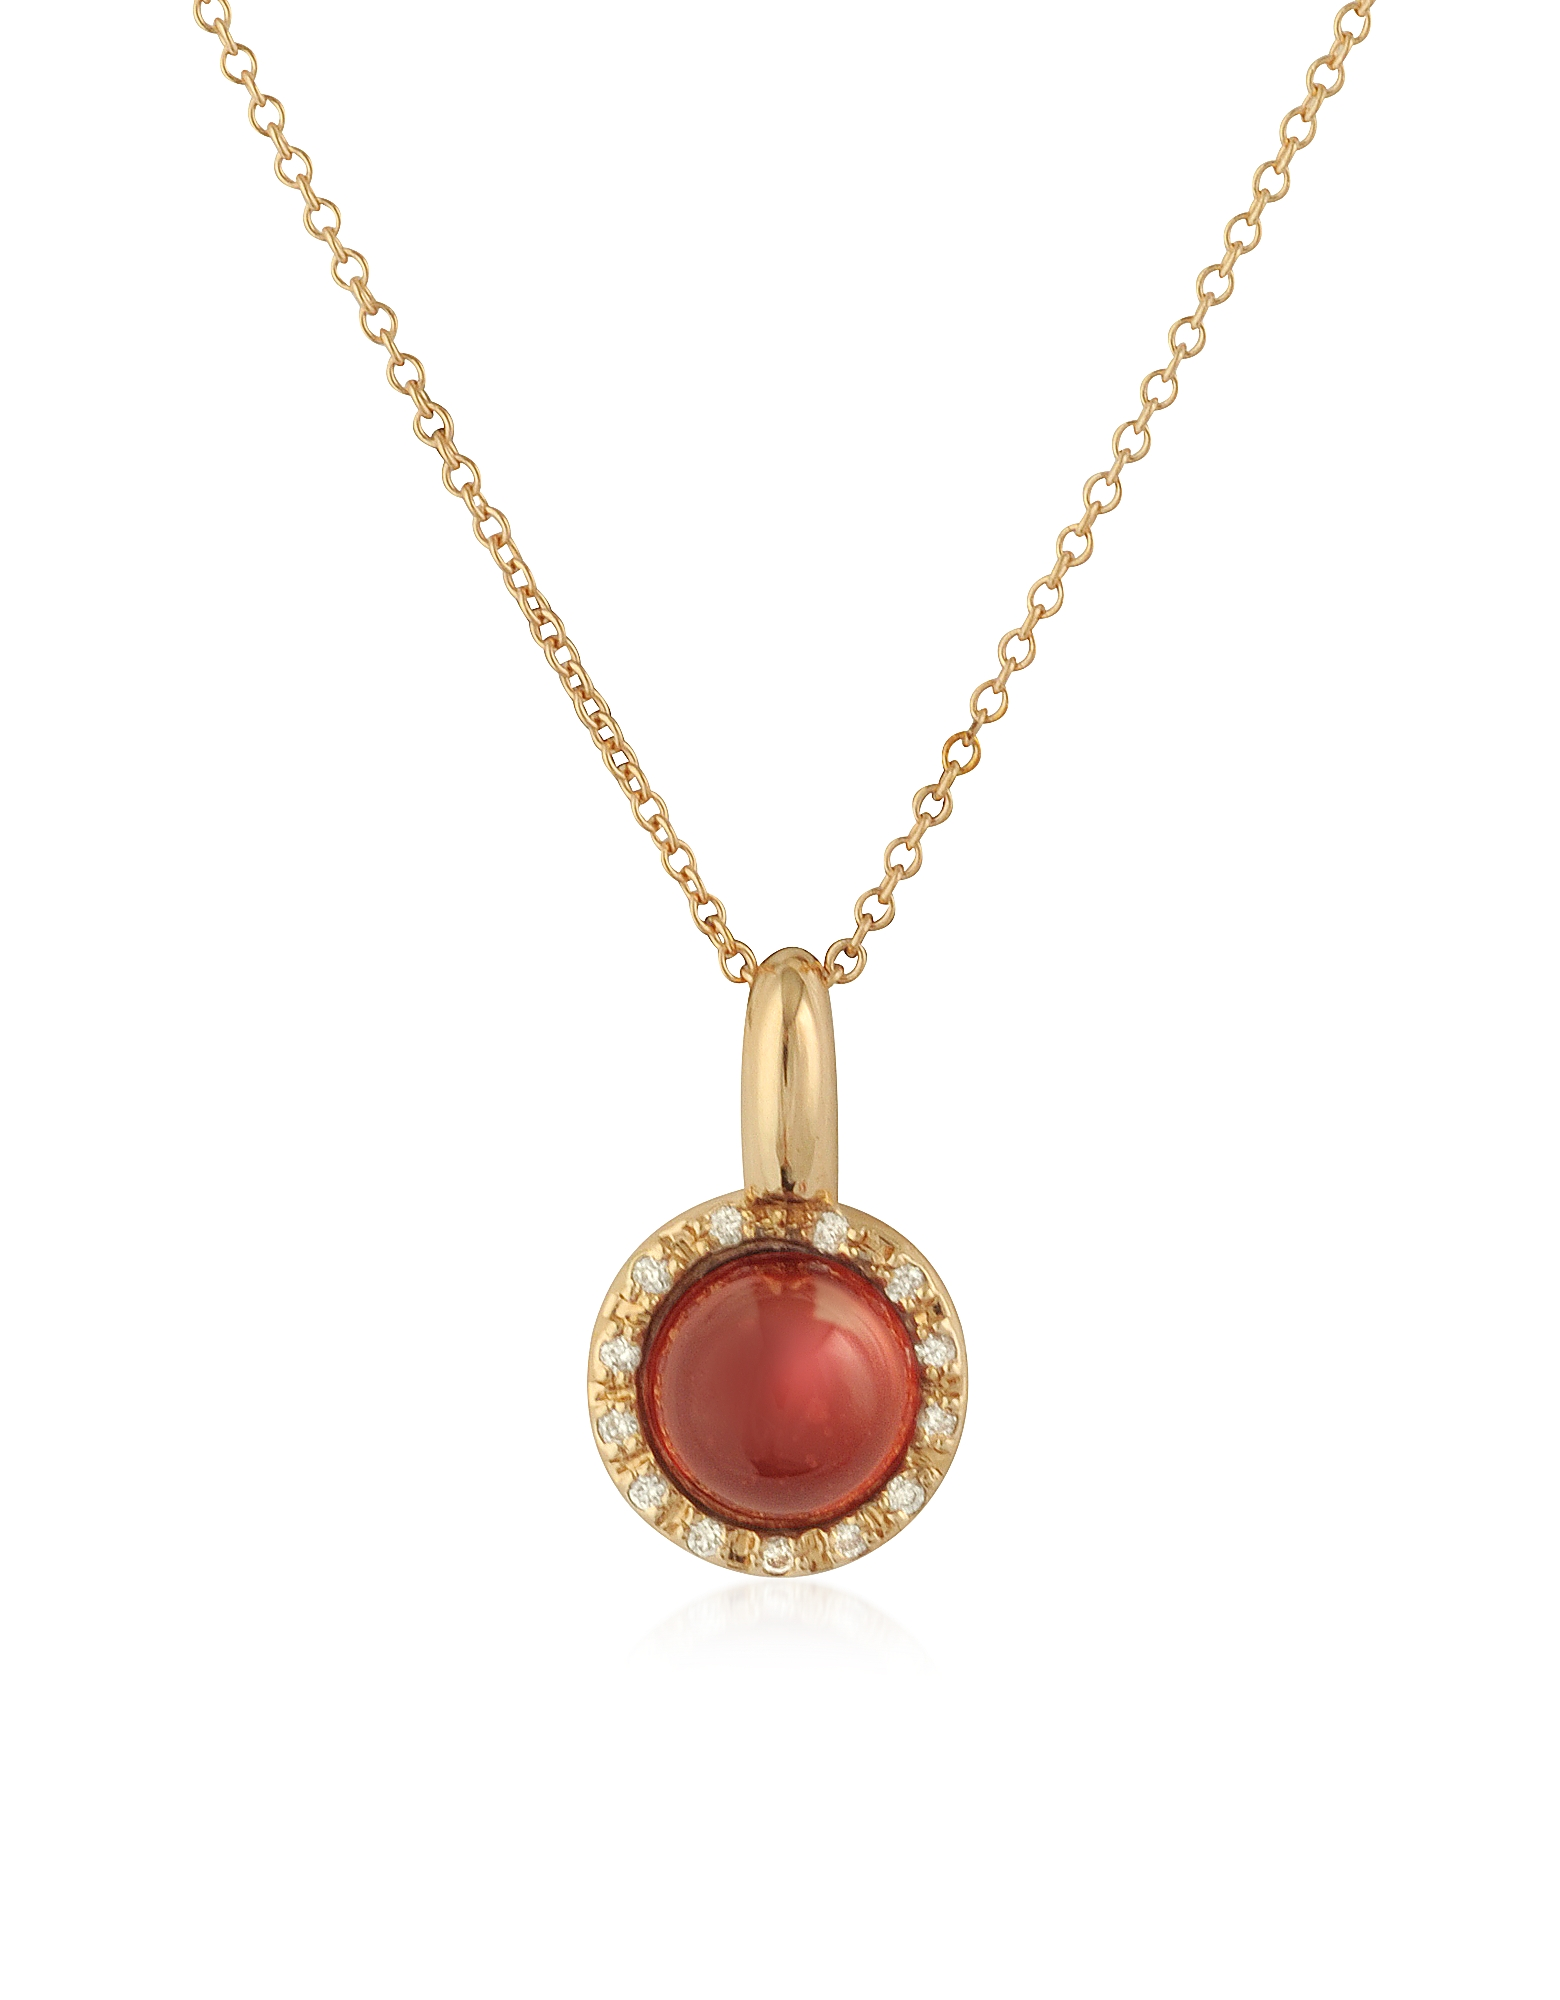 Mia & Beverly Designer Necklaces, Garnet and Diamond 18K Rose Gold Charm Necklace